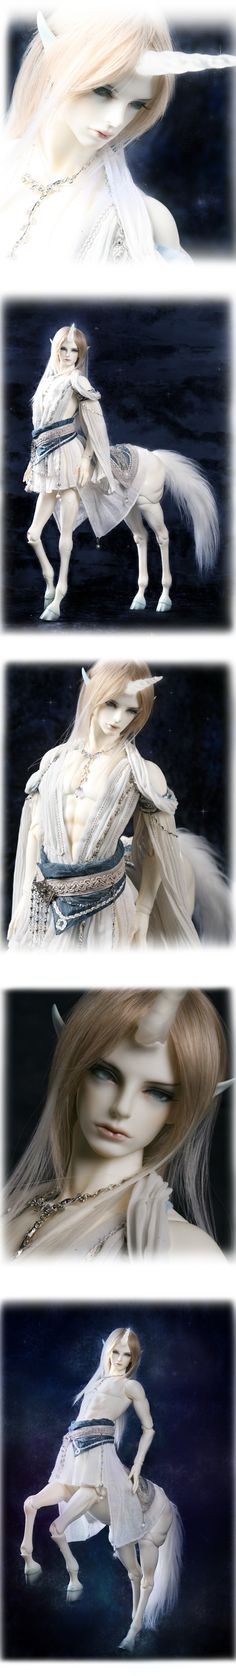 Soom Ball-jointed doll BJD Unicentaur